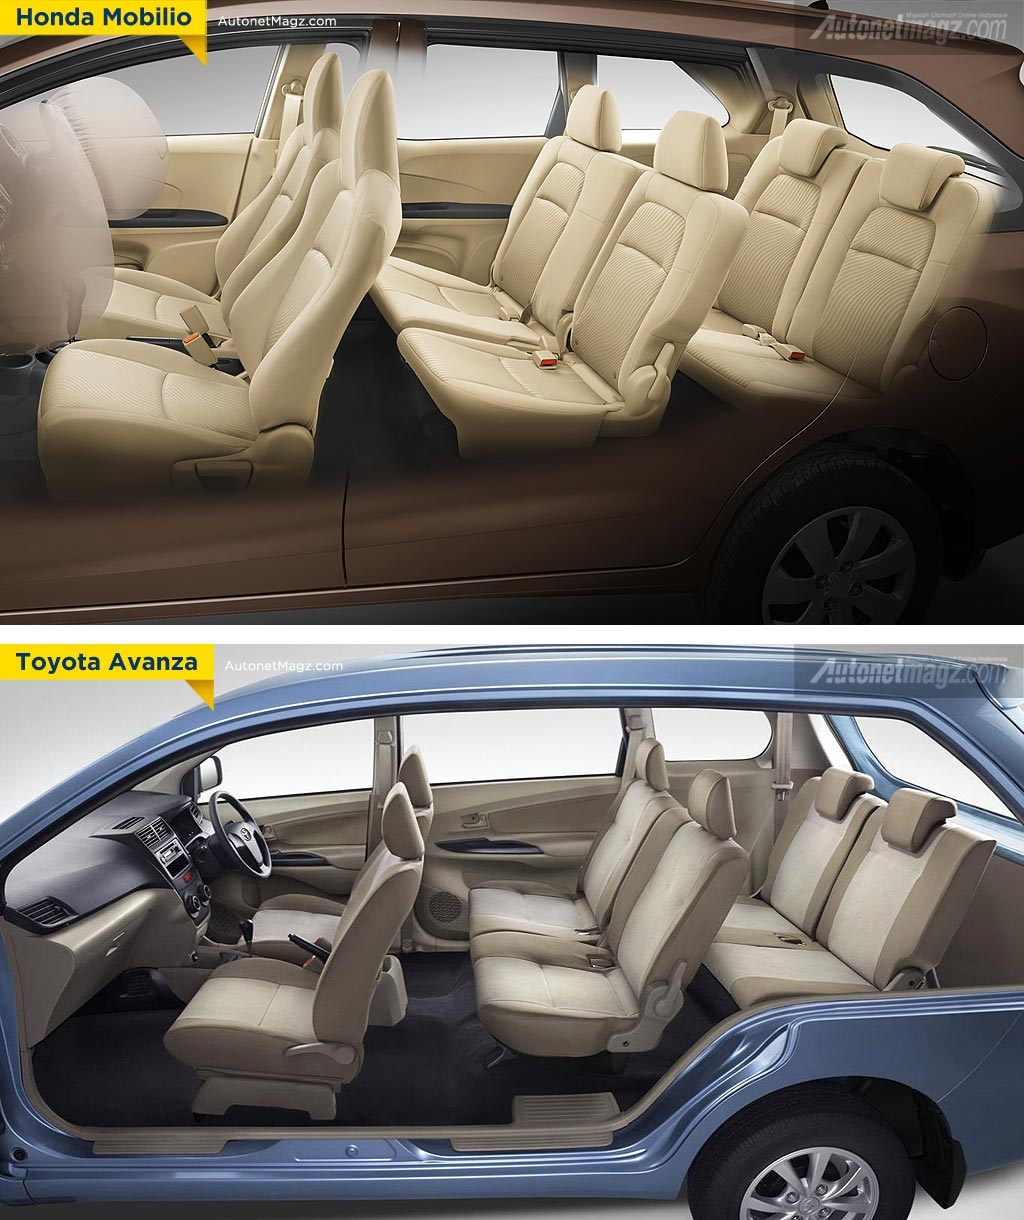 Pictures of honda mobilio (ga-iv) 2003 #7